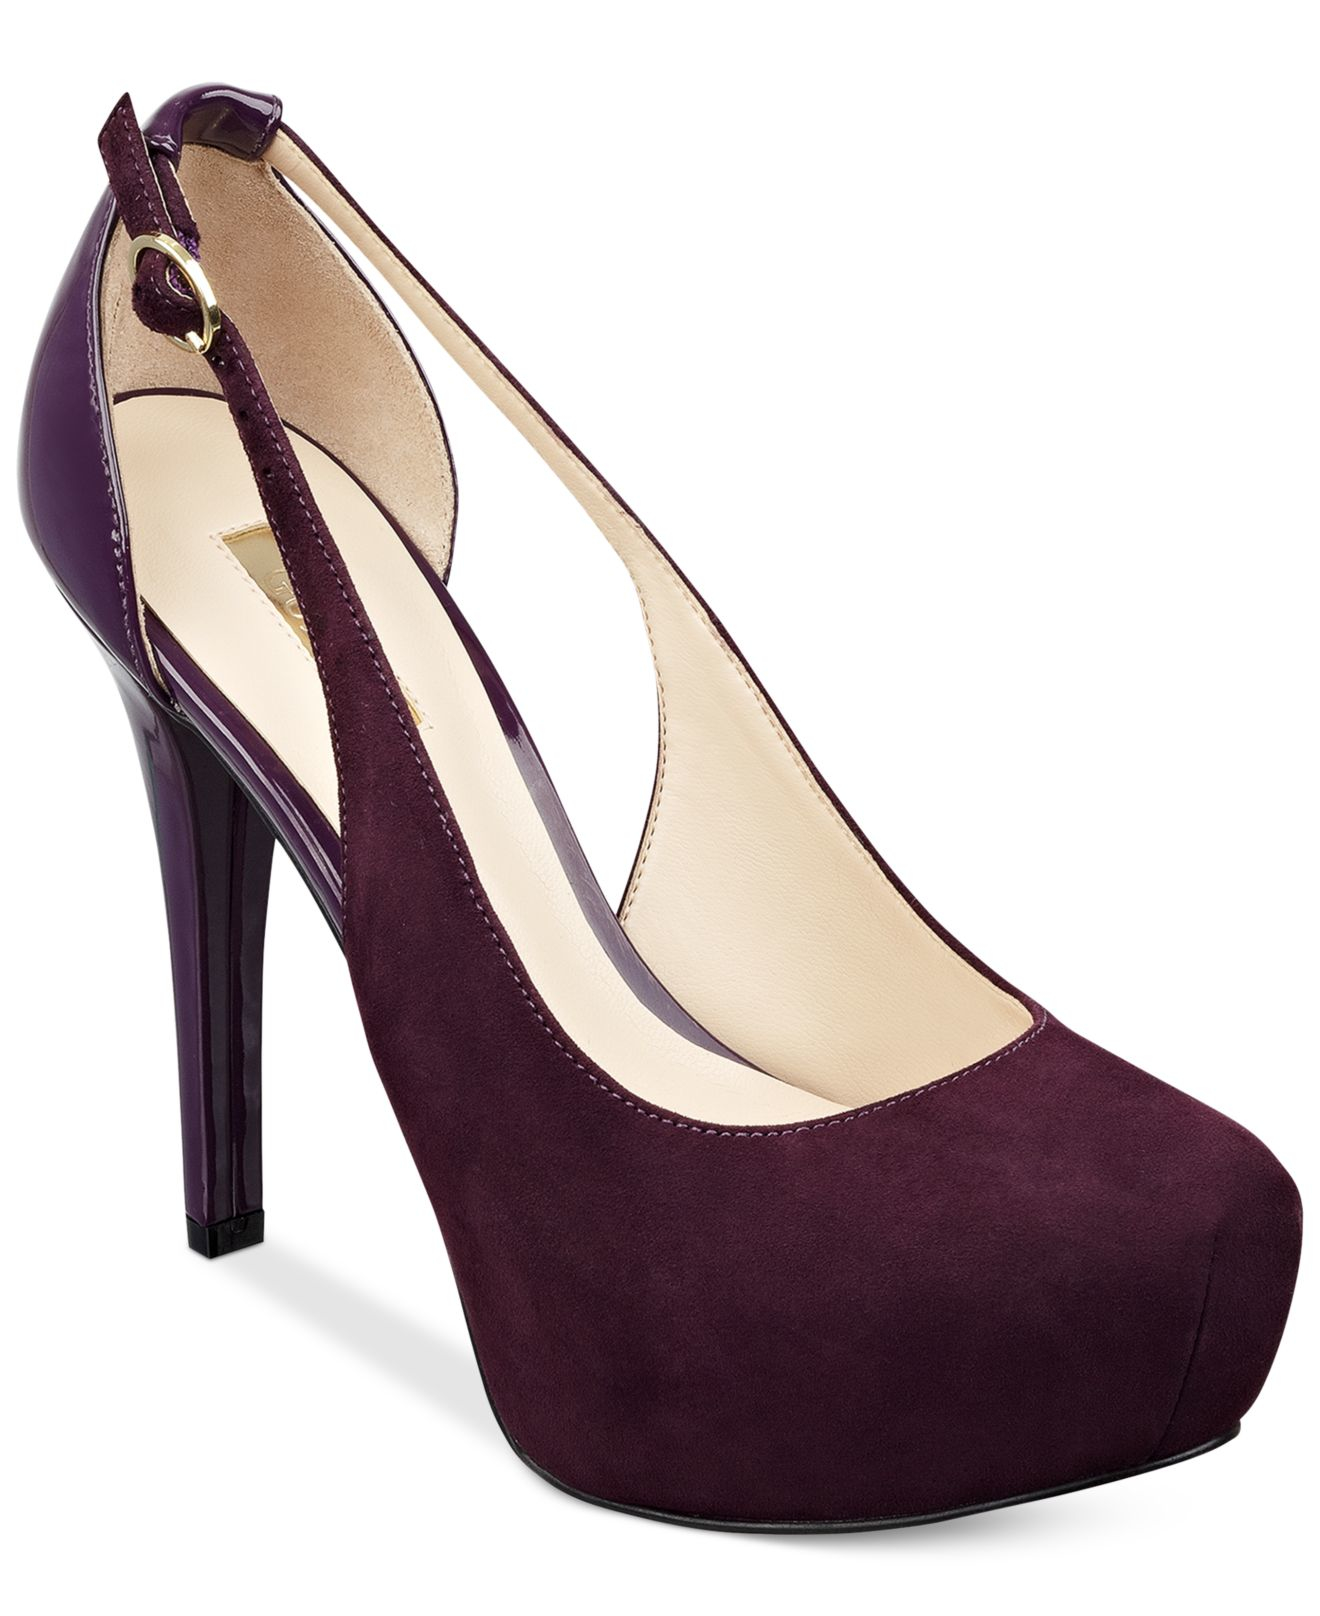 Plum Colored Women S Shoes